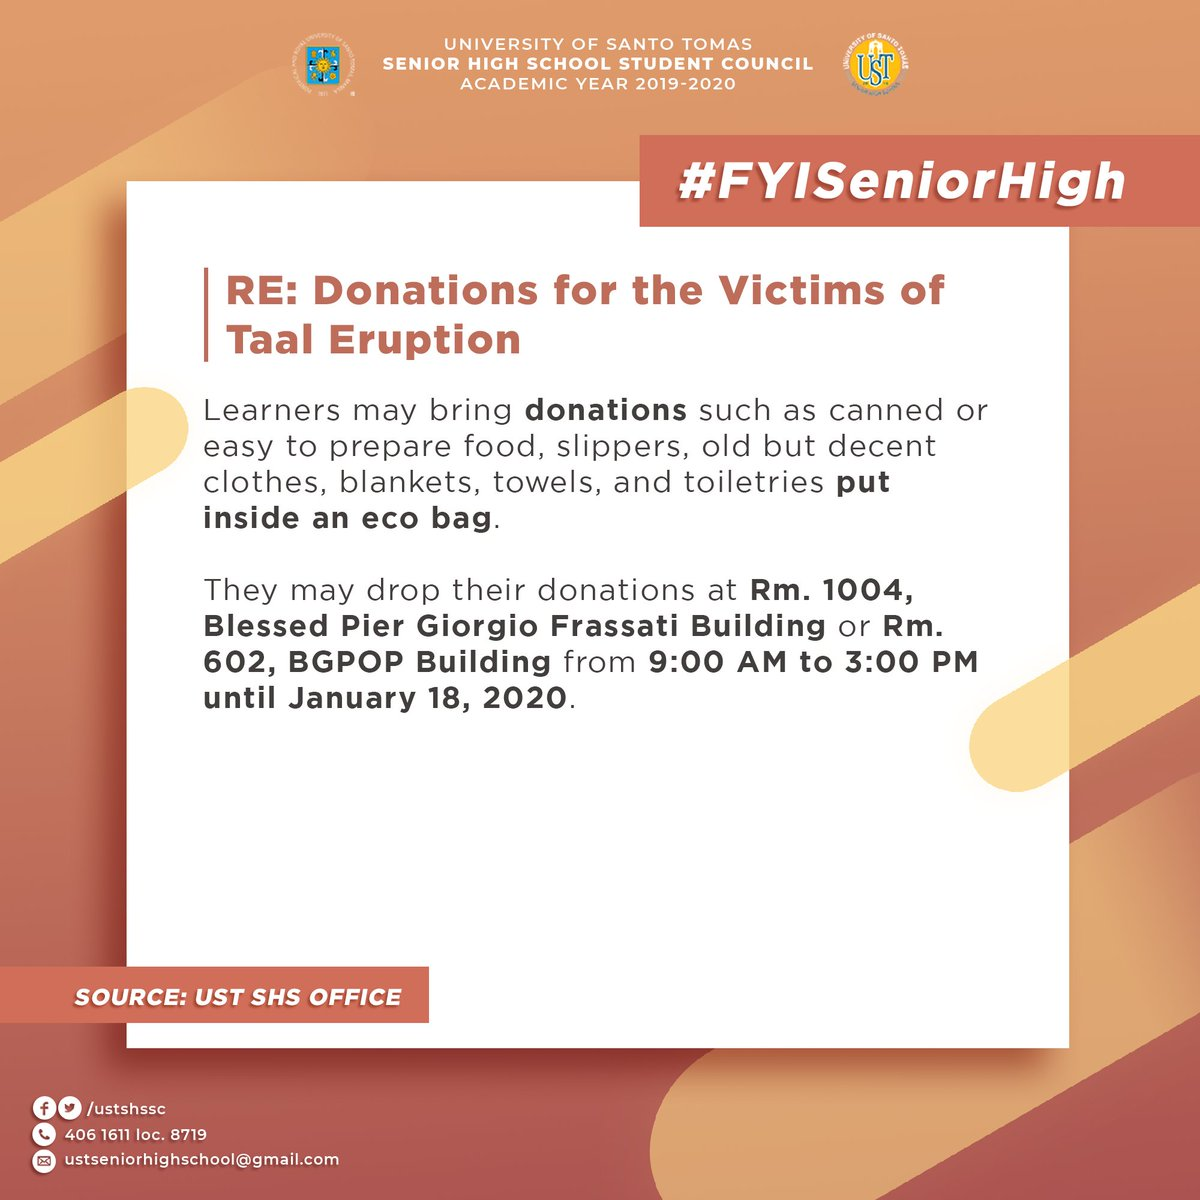 #FYISeniorHigh RE: Donations for the Victims of Taal Eruption Please be guided accordingly.